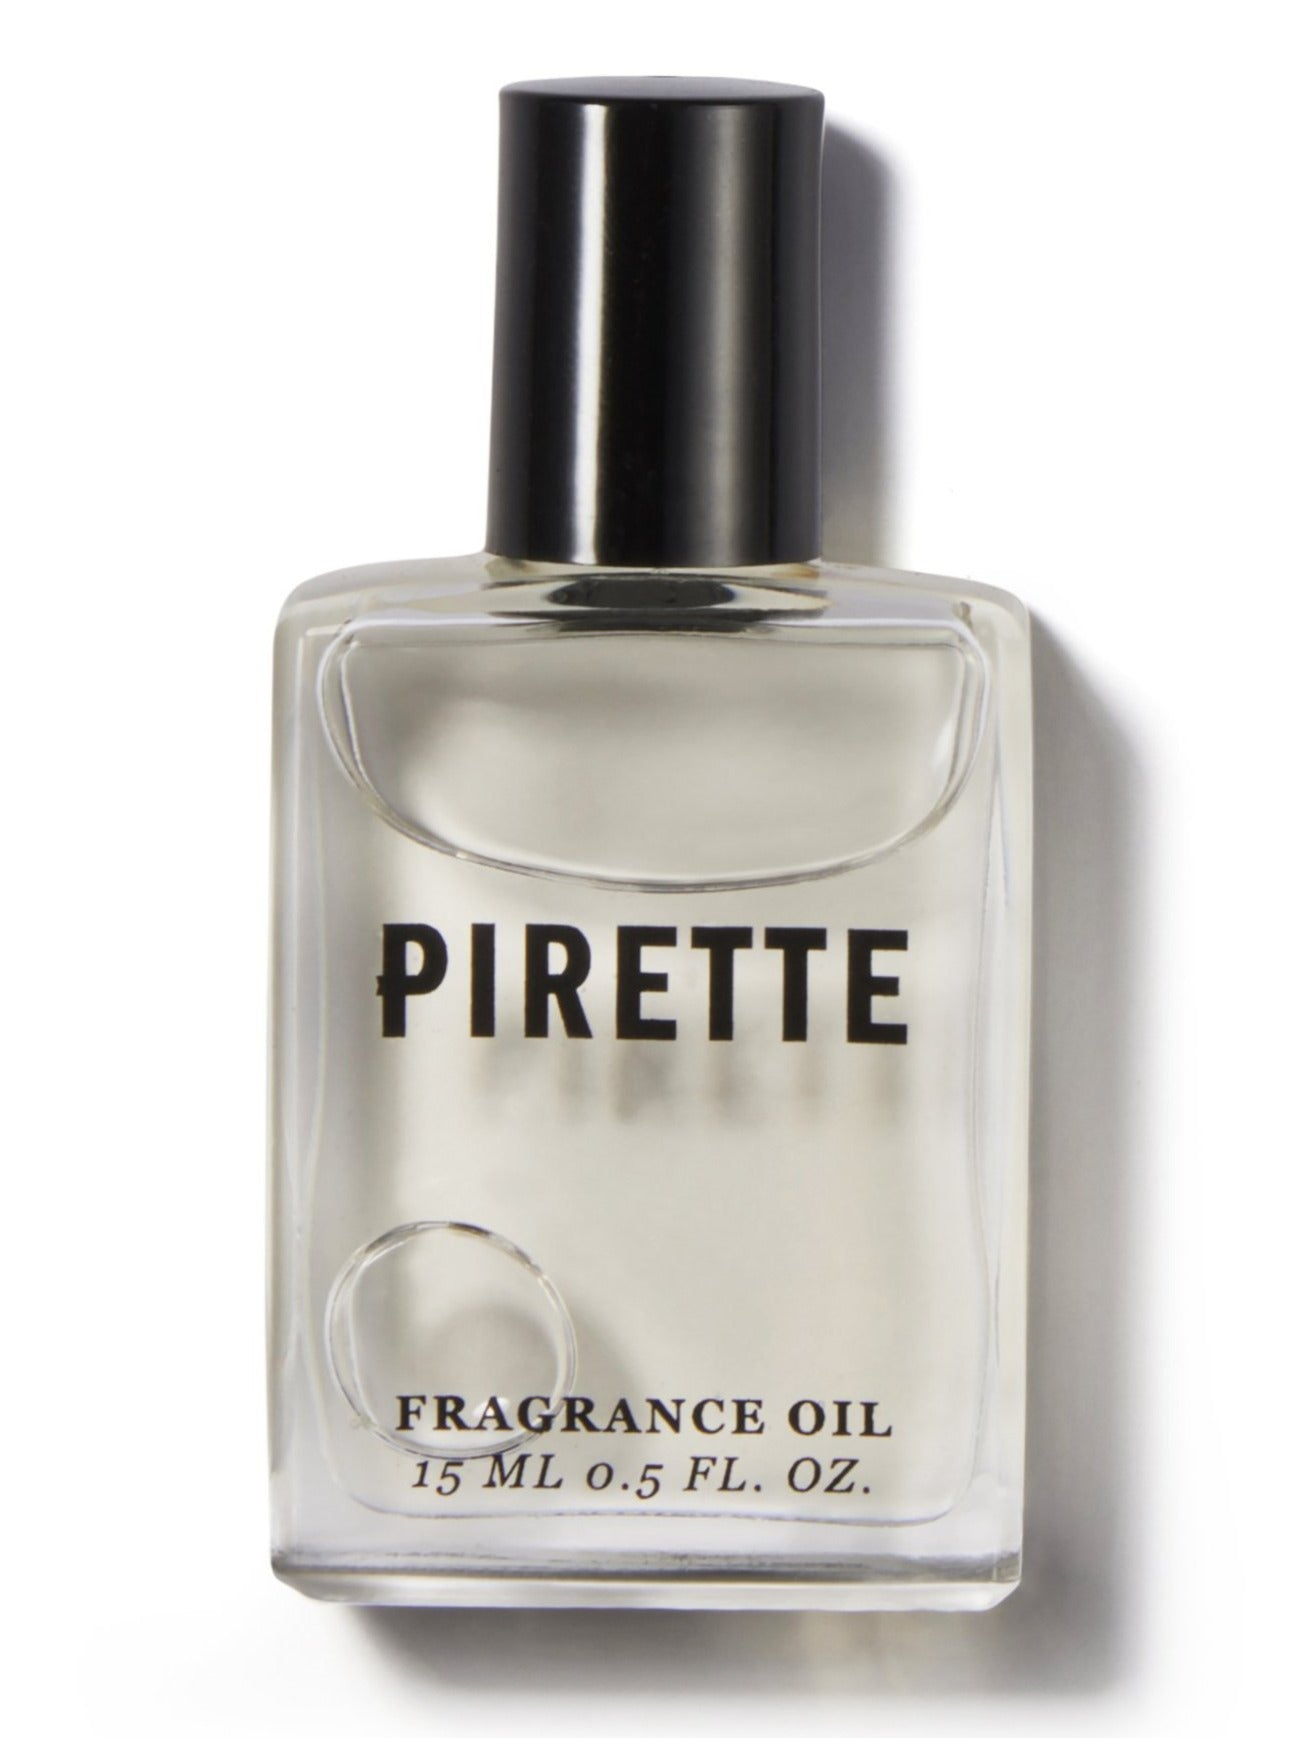 PIRETTE BEACH 15ml Rollerball Perfume Fragrance Oil Coconut Surf Wax Salt Vanilla